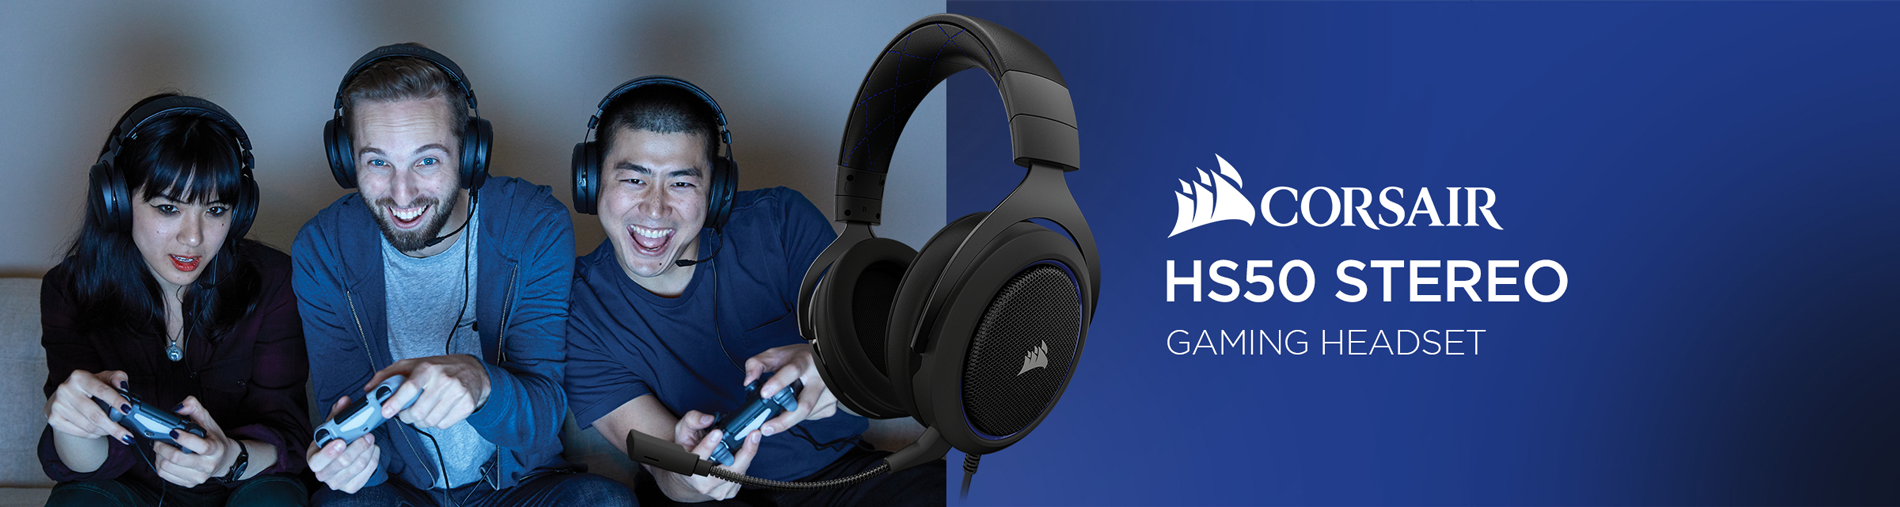 Corsair HS50 Stereo Gaming Headset